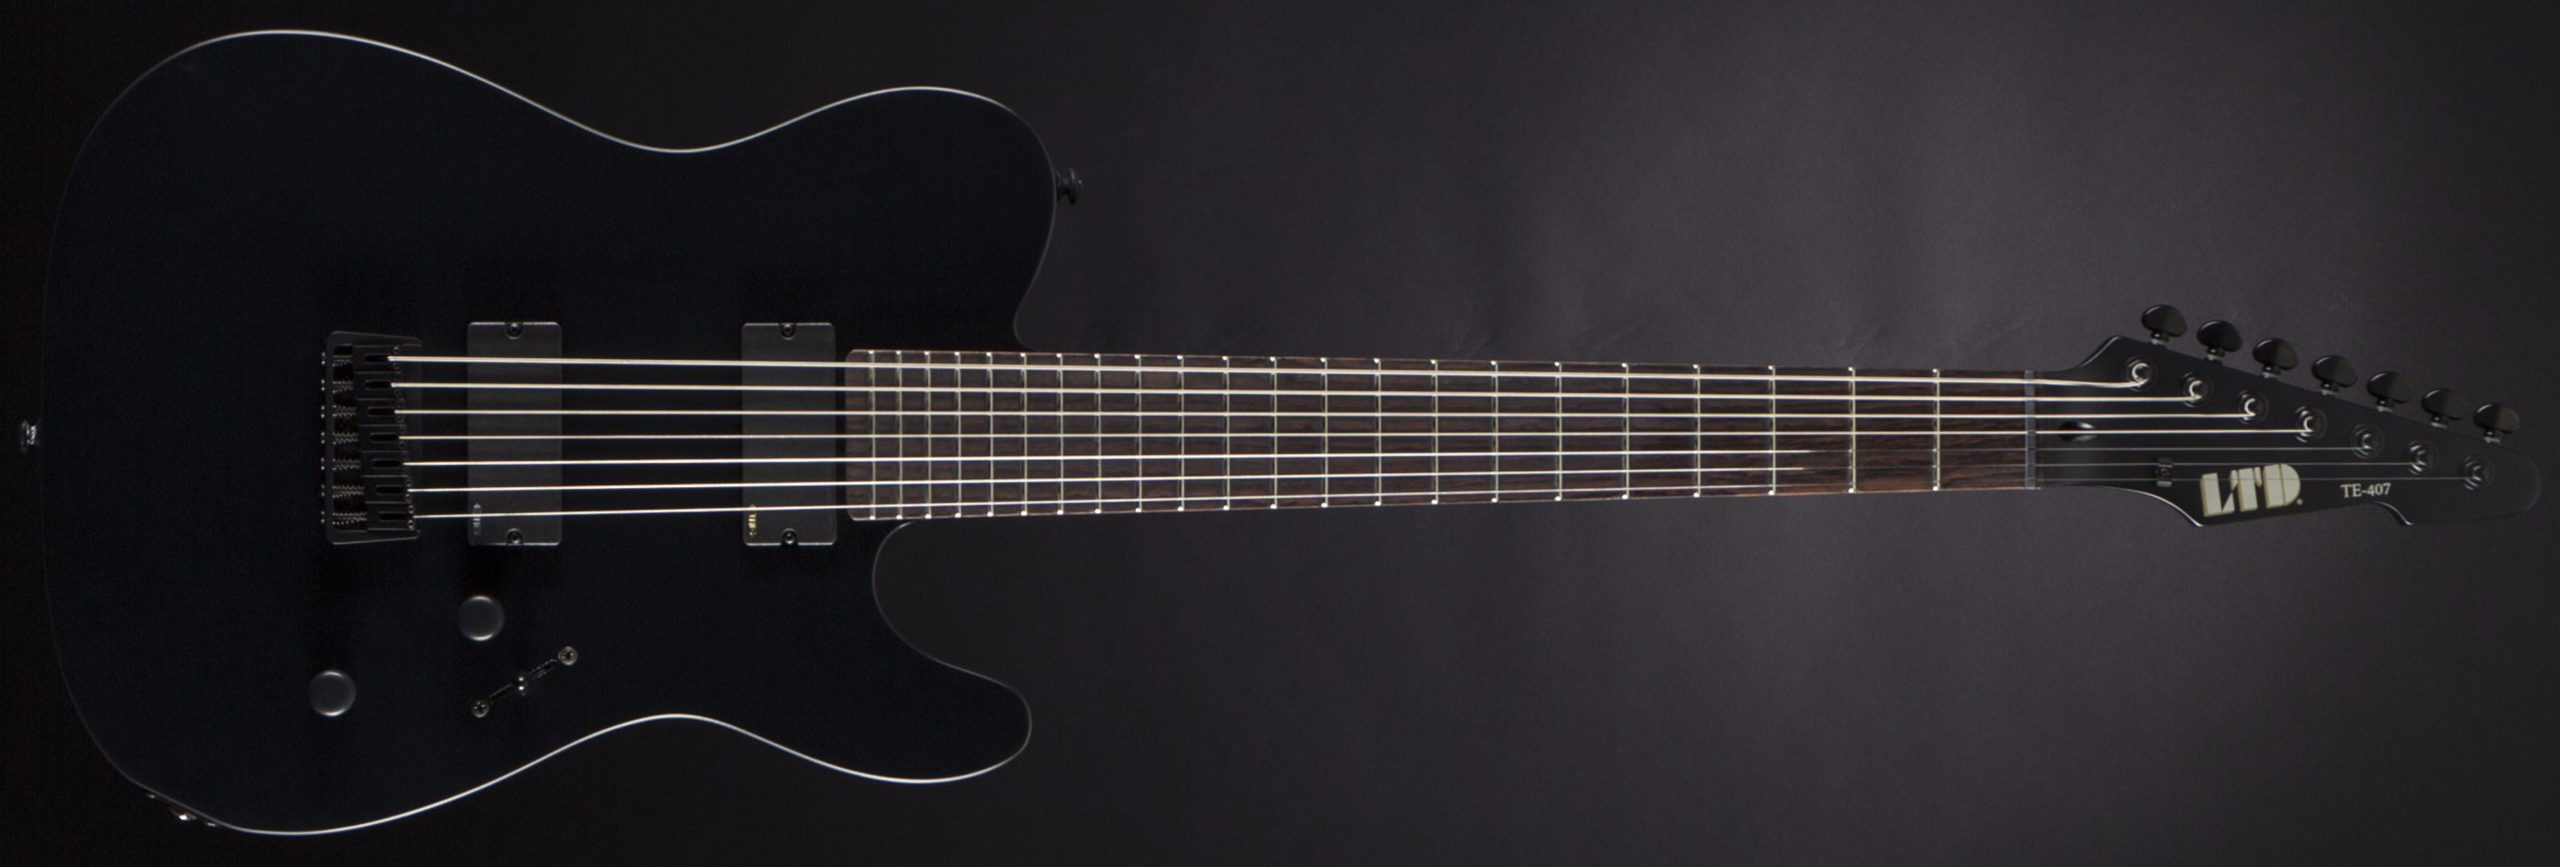 ESP LTD TE-407 Black Satin